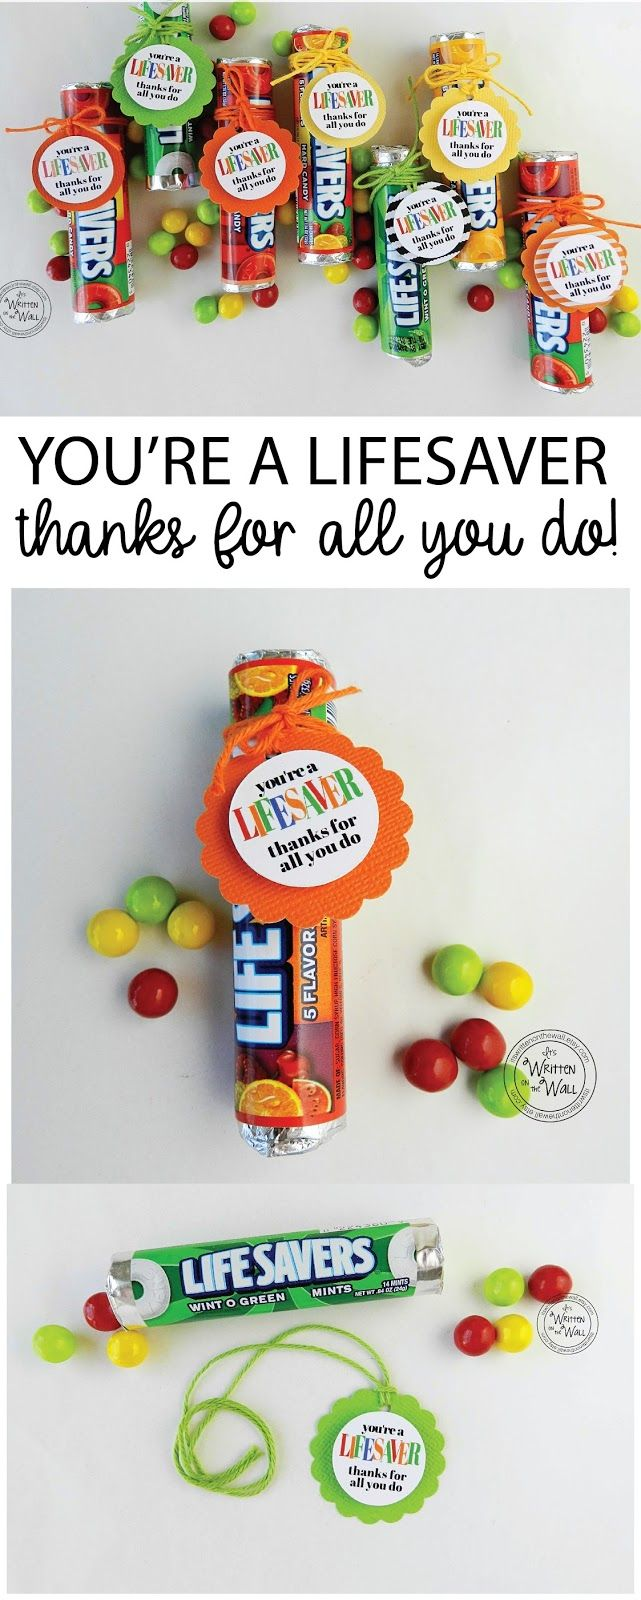 25 unique staff gifts ideas on pinterest gifts for staff staff teacher appreciation nurse appreciation employee recognition thank you gifts youre a lifesaver negle Images